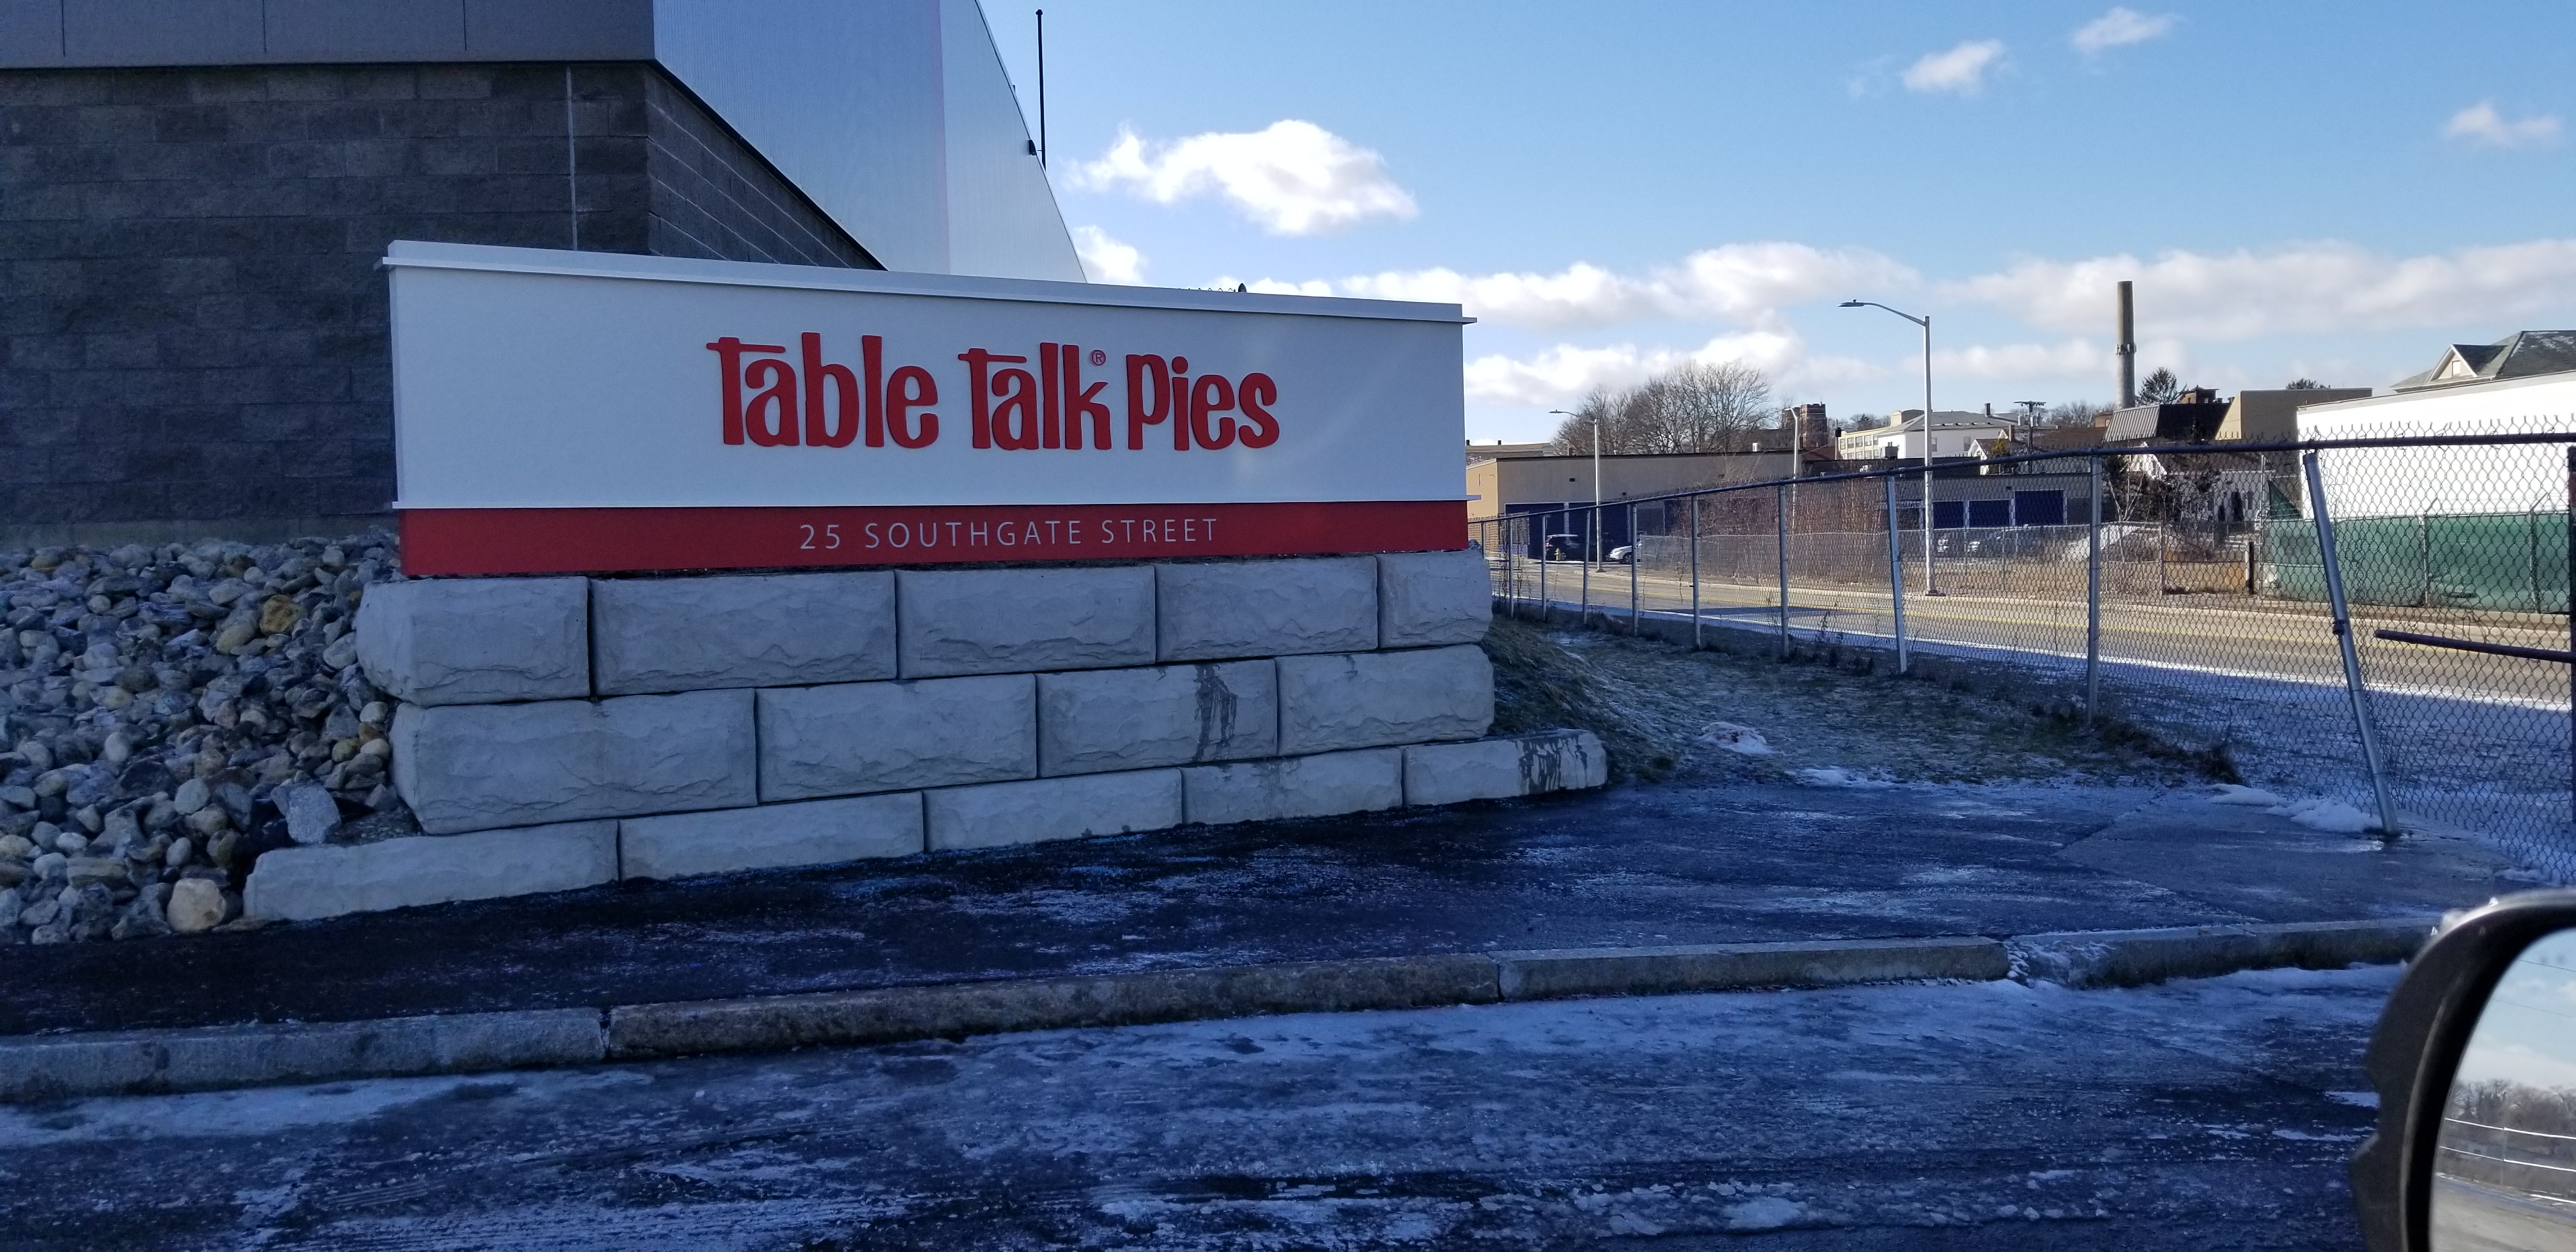 Table Talk Pies 25 Southgate Street Worcester Ma 01610